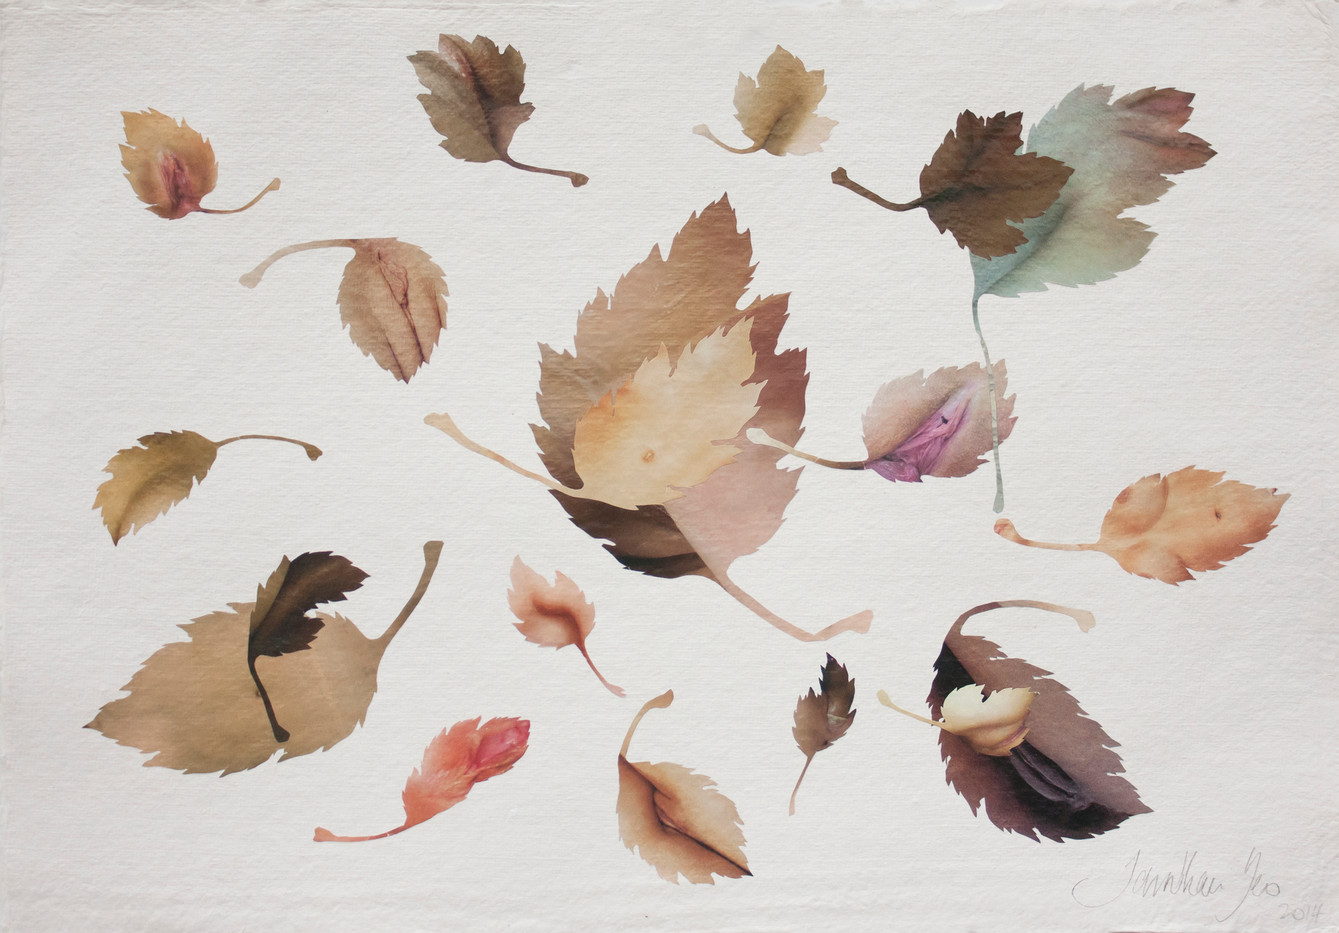 Jonathan Yeo | Untitled | 2014 | Collage on Paper | 31 x 42.5 cm